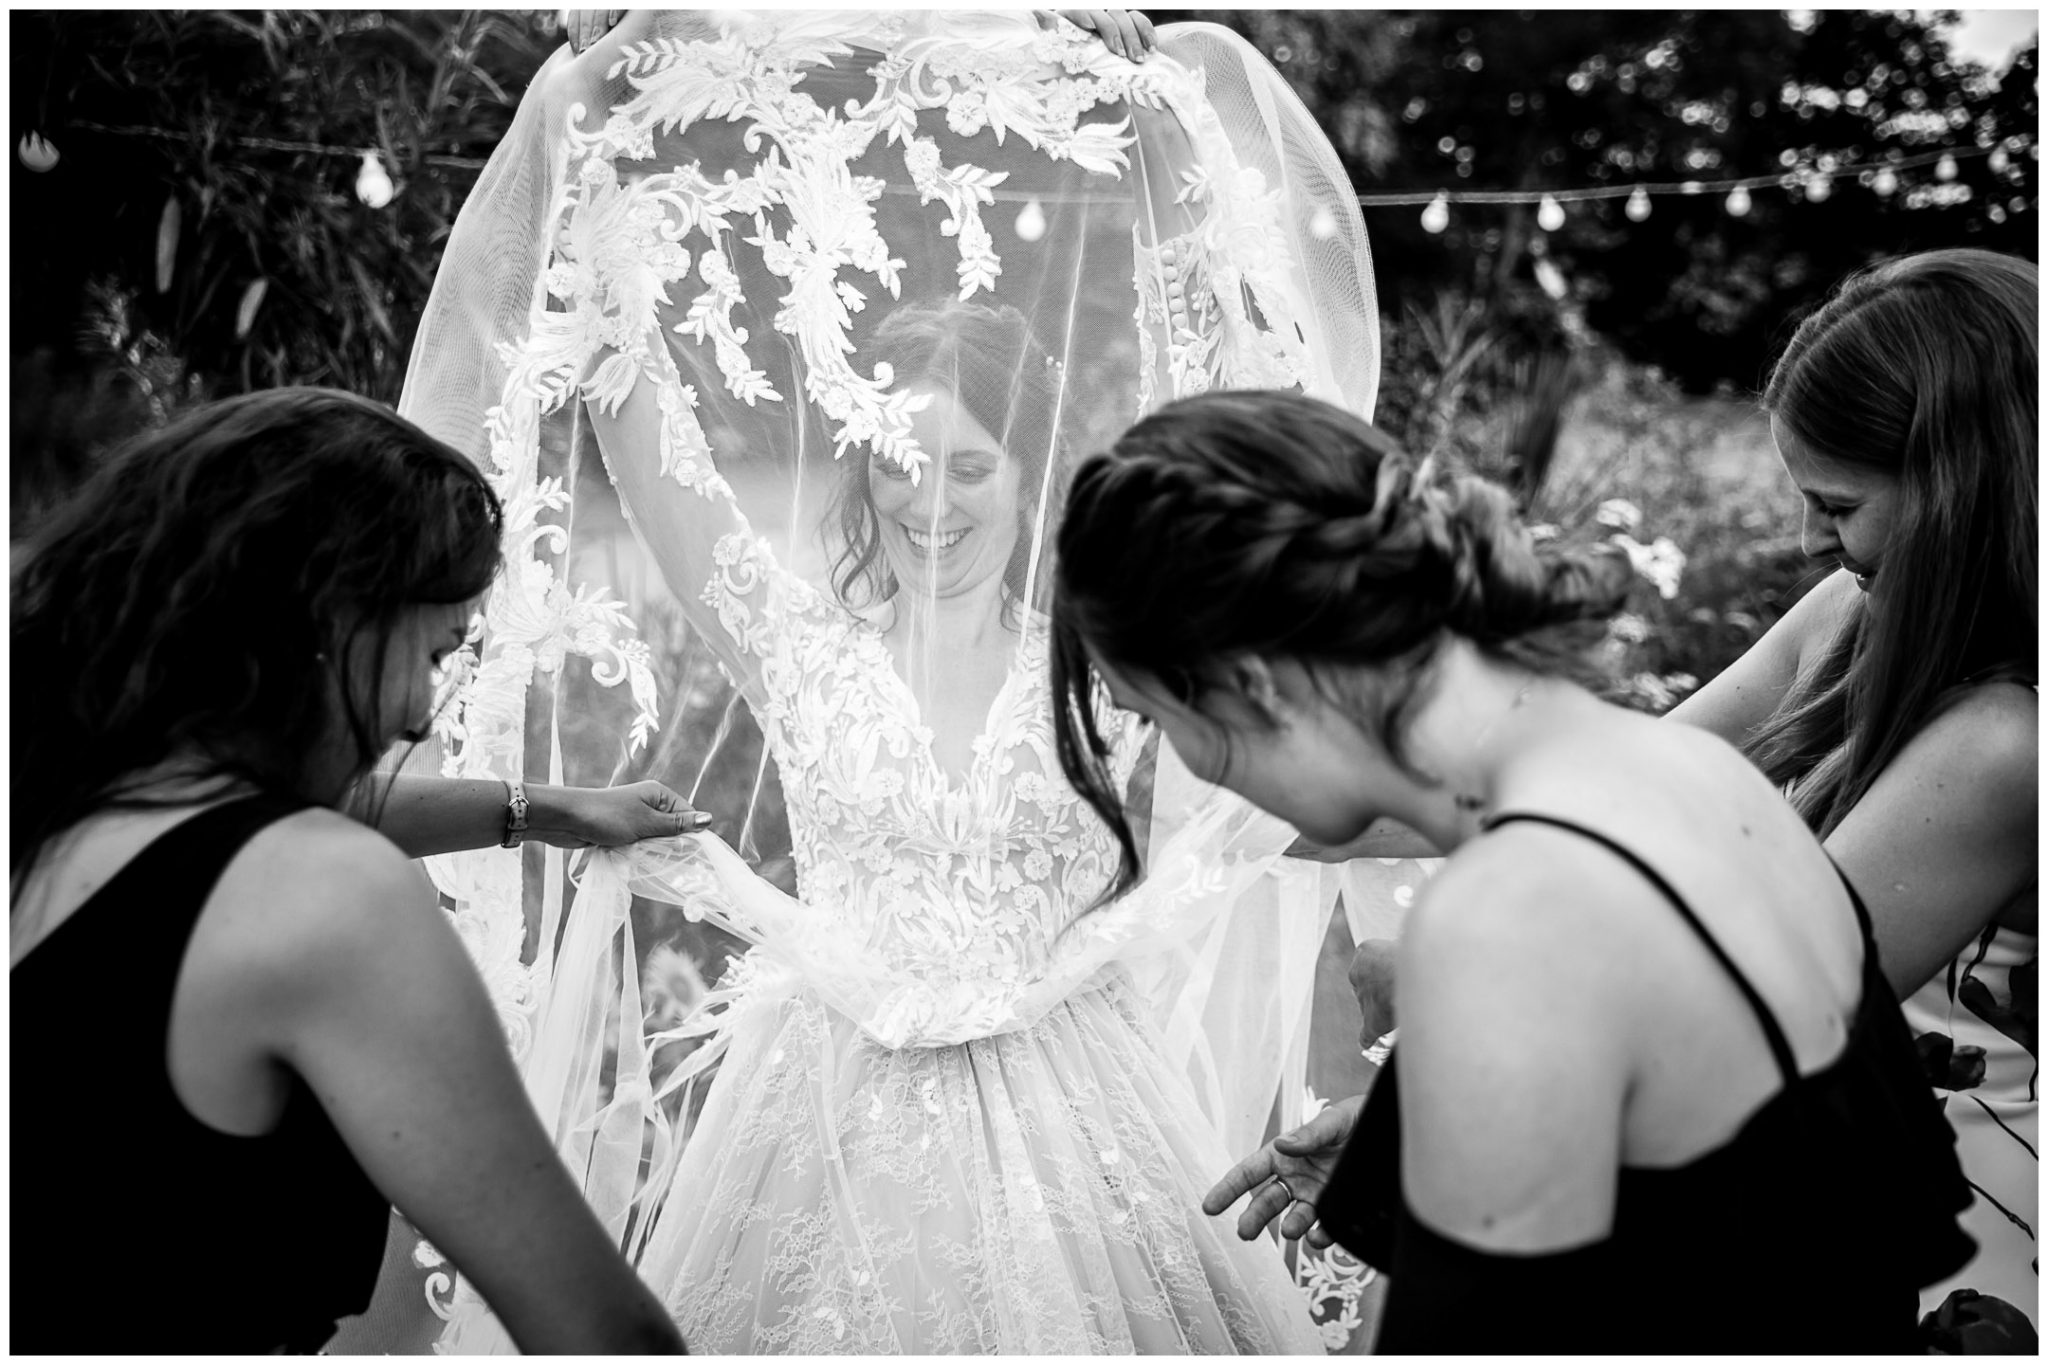 Guests examine the bride's wedding dress